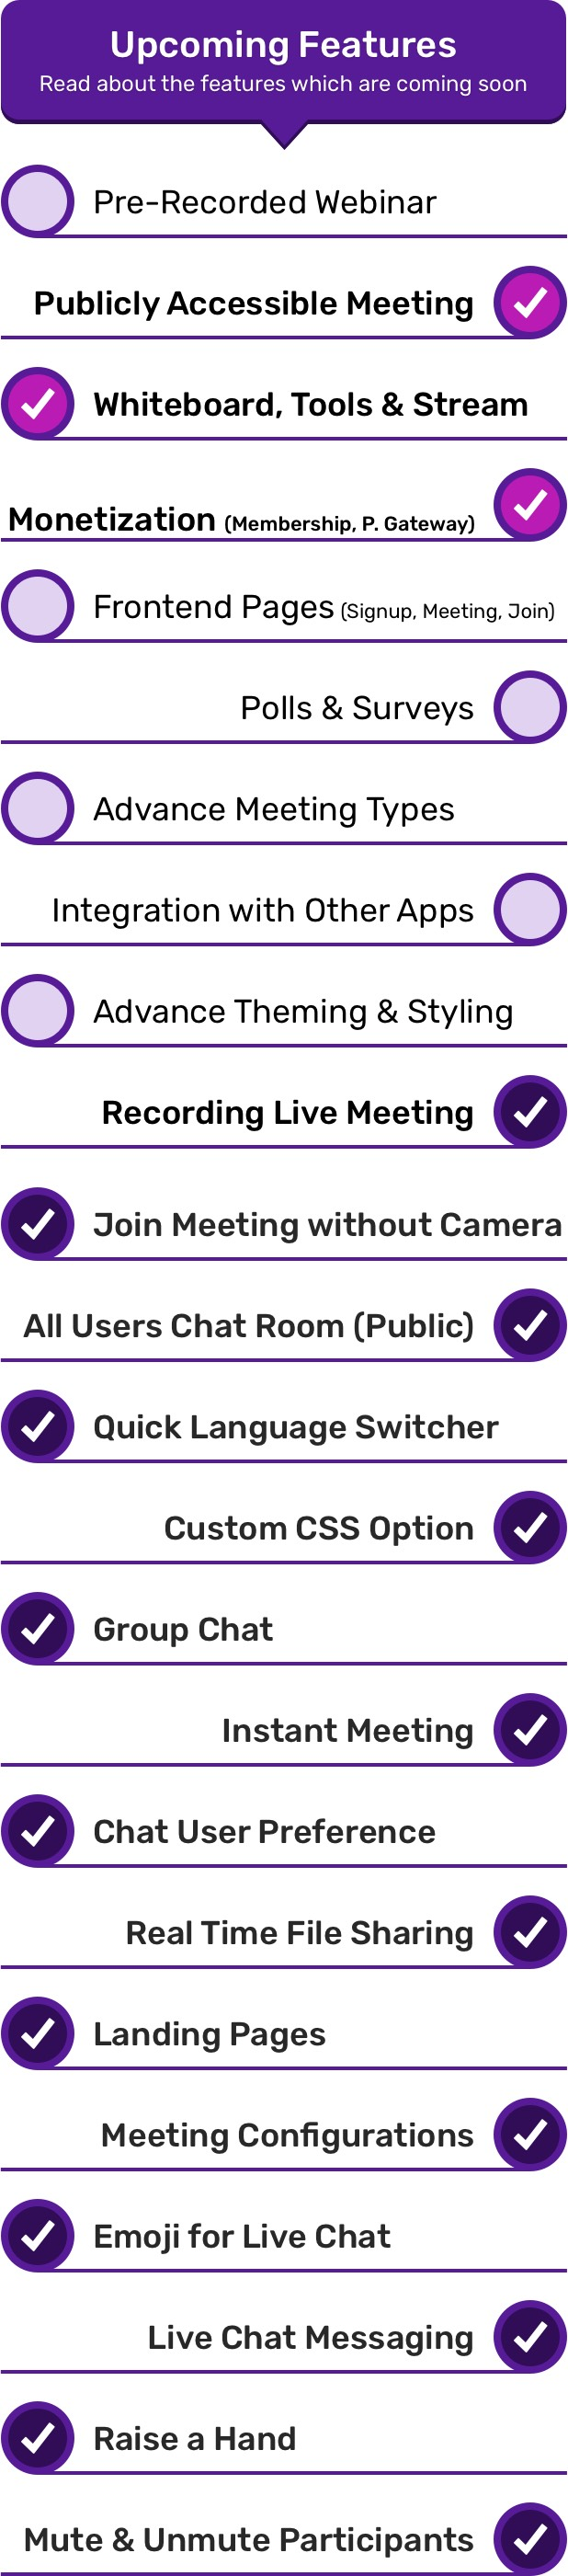 Connect - Upcoming Features - Recording, Pre-recorded Webinar, WhiteBoard, Click to Call